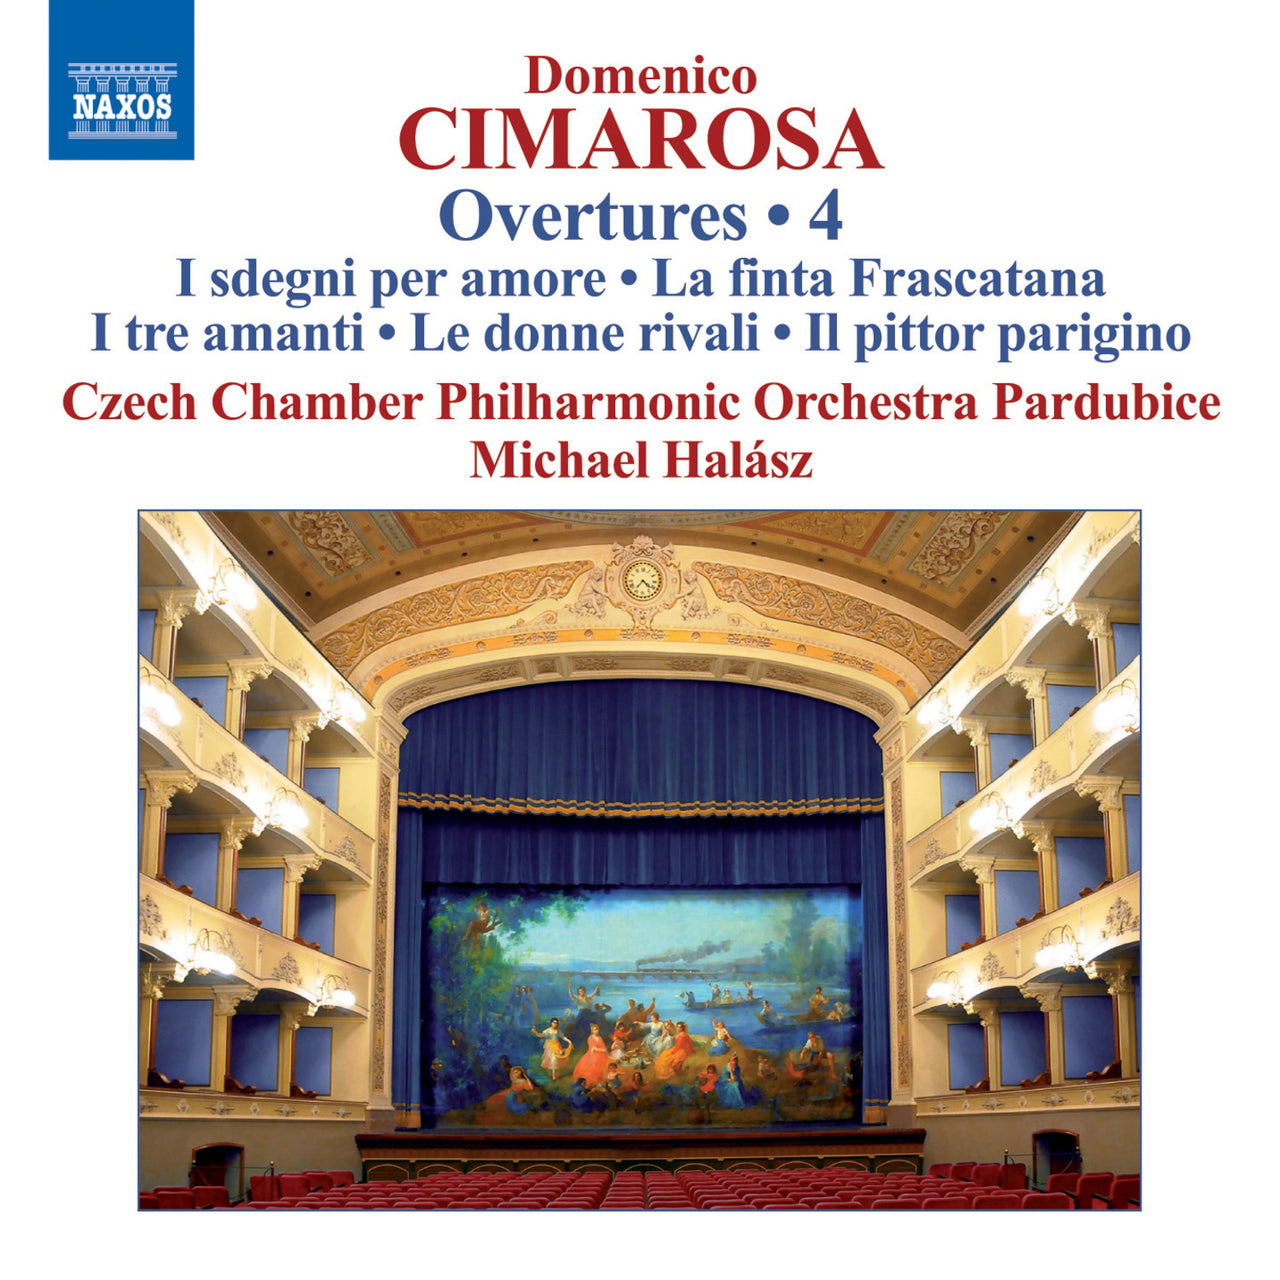 Cimarosa, Domenico : Overtures, Vol. 4  CD